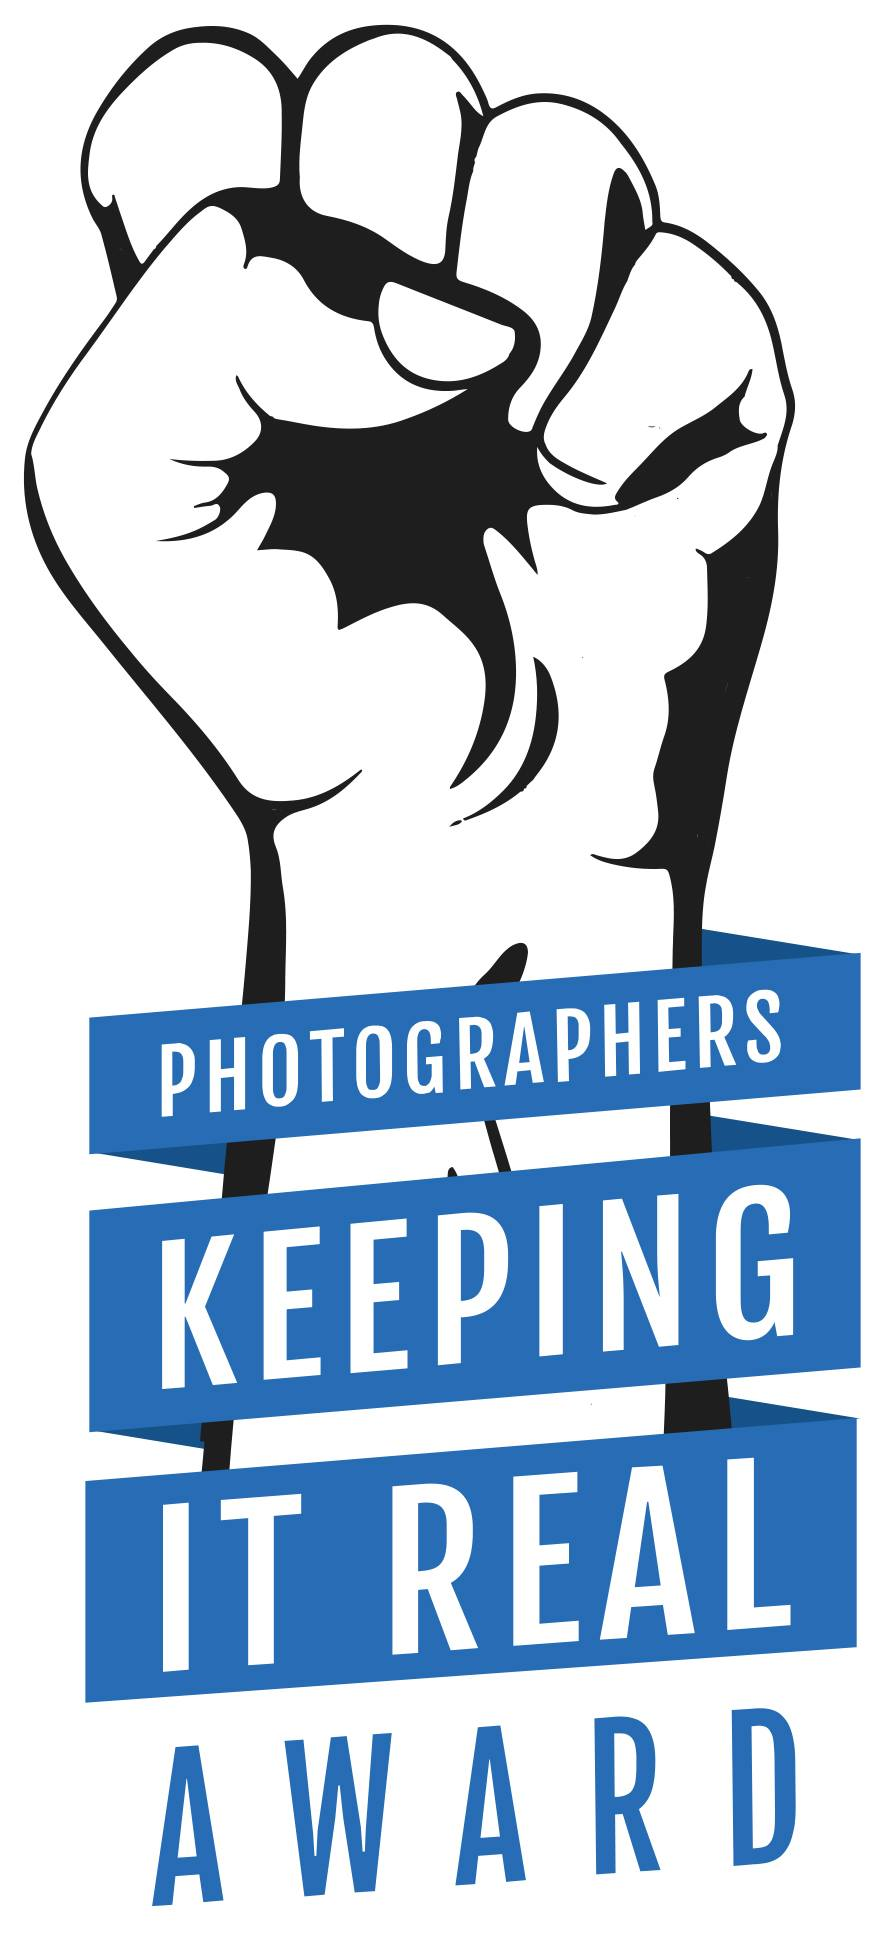 Photographer keeping it real award badge